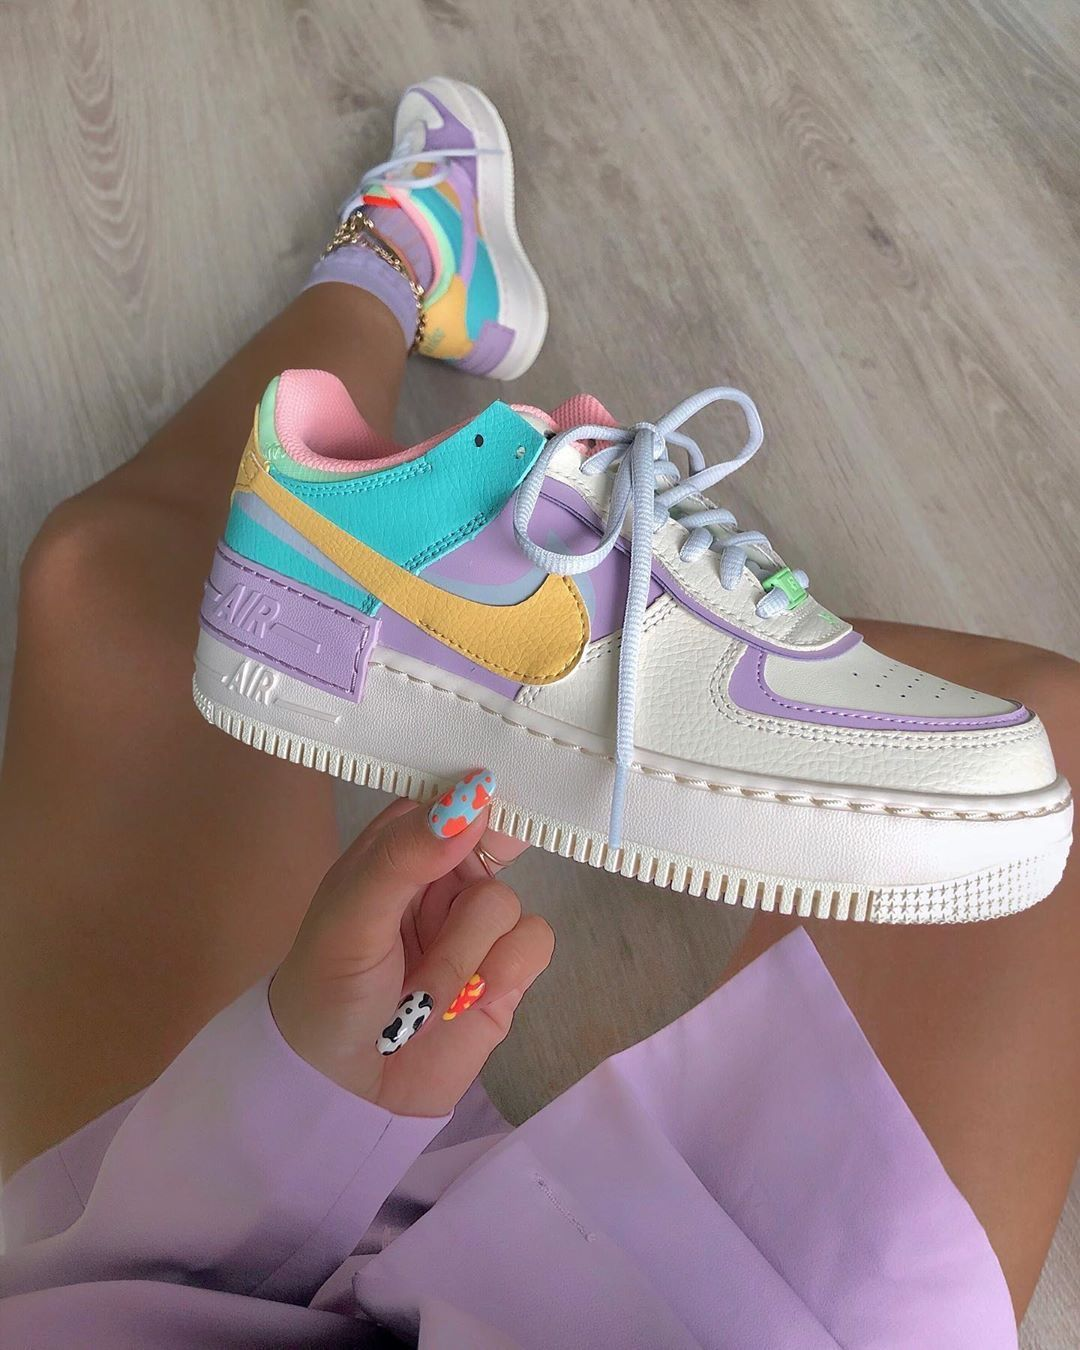 Nike Air Force 1 Shadow Pastel Multi Em 2020 Sapato Da Nike